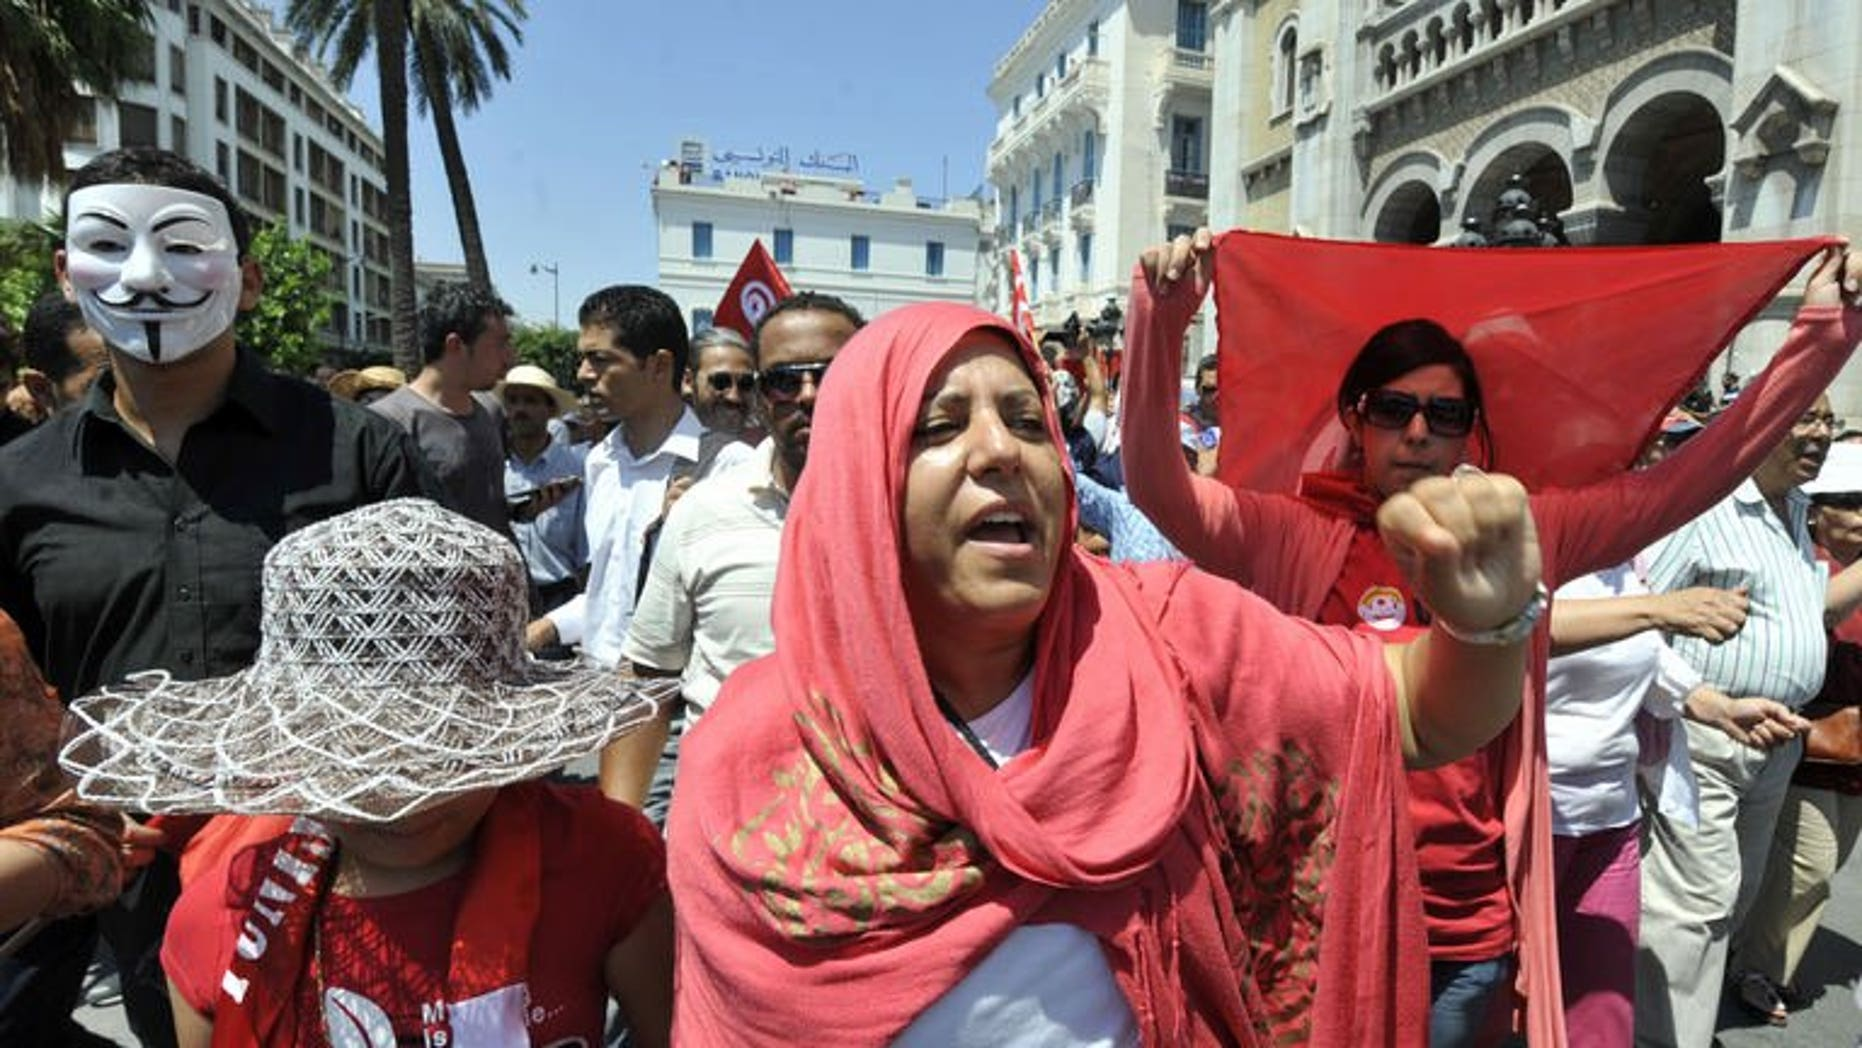 Tunisian protesters shout slogans during an anti-government demonstration on July 26, 2013 in Tunis after the killing of the opposition politician Mohamed Brahmi. A demonstrator was killed in the central Tunisian town of Gafsa overnight during a march protesting the assassination of Brahmi.